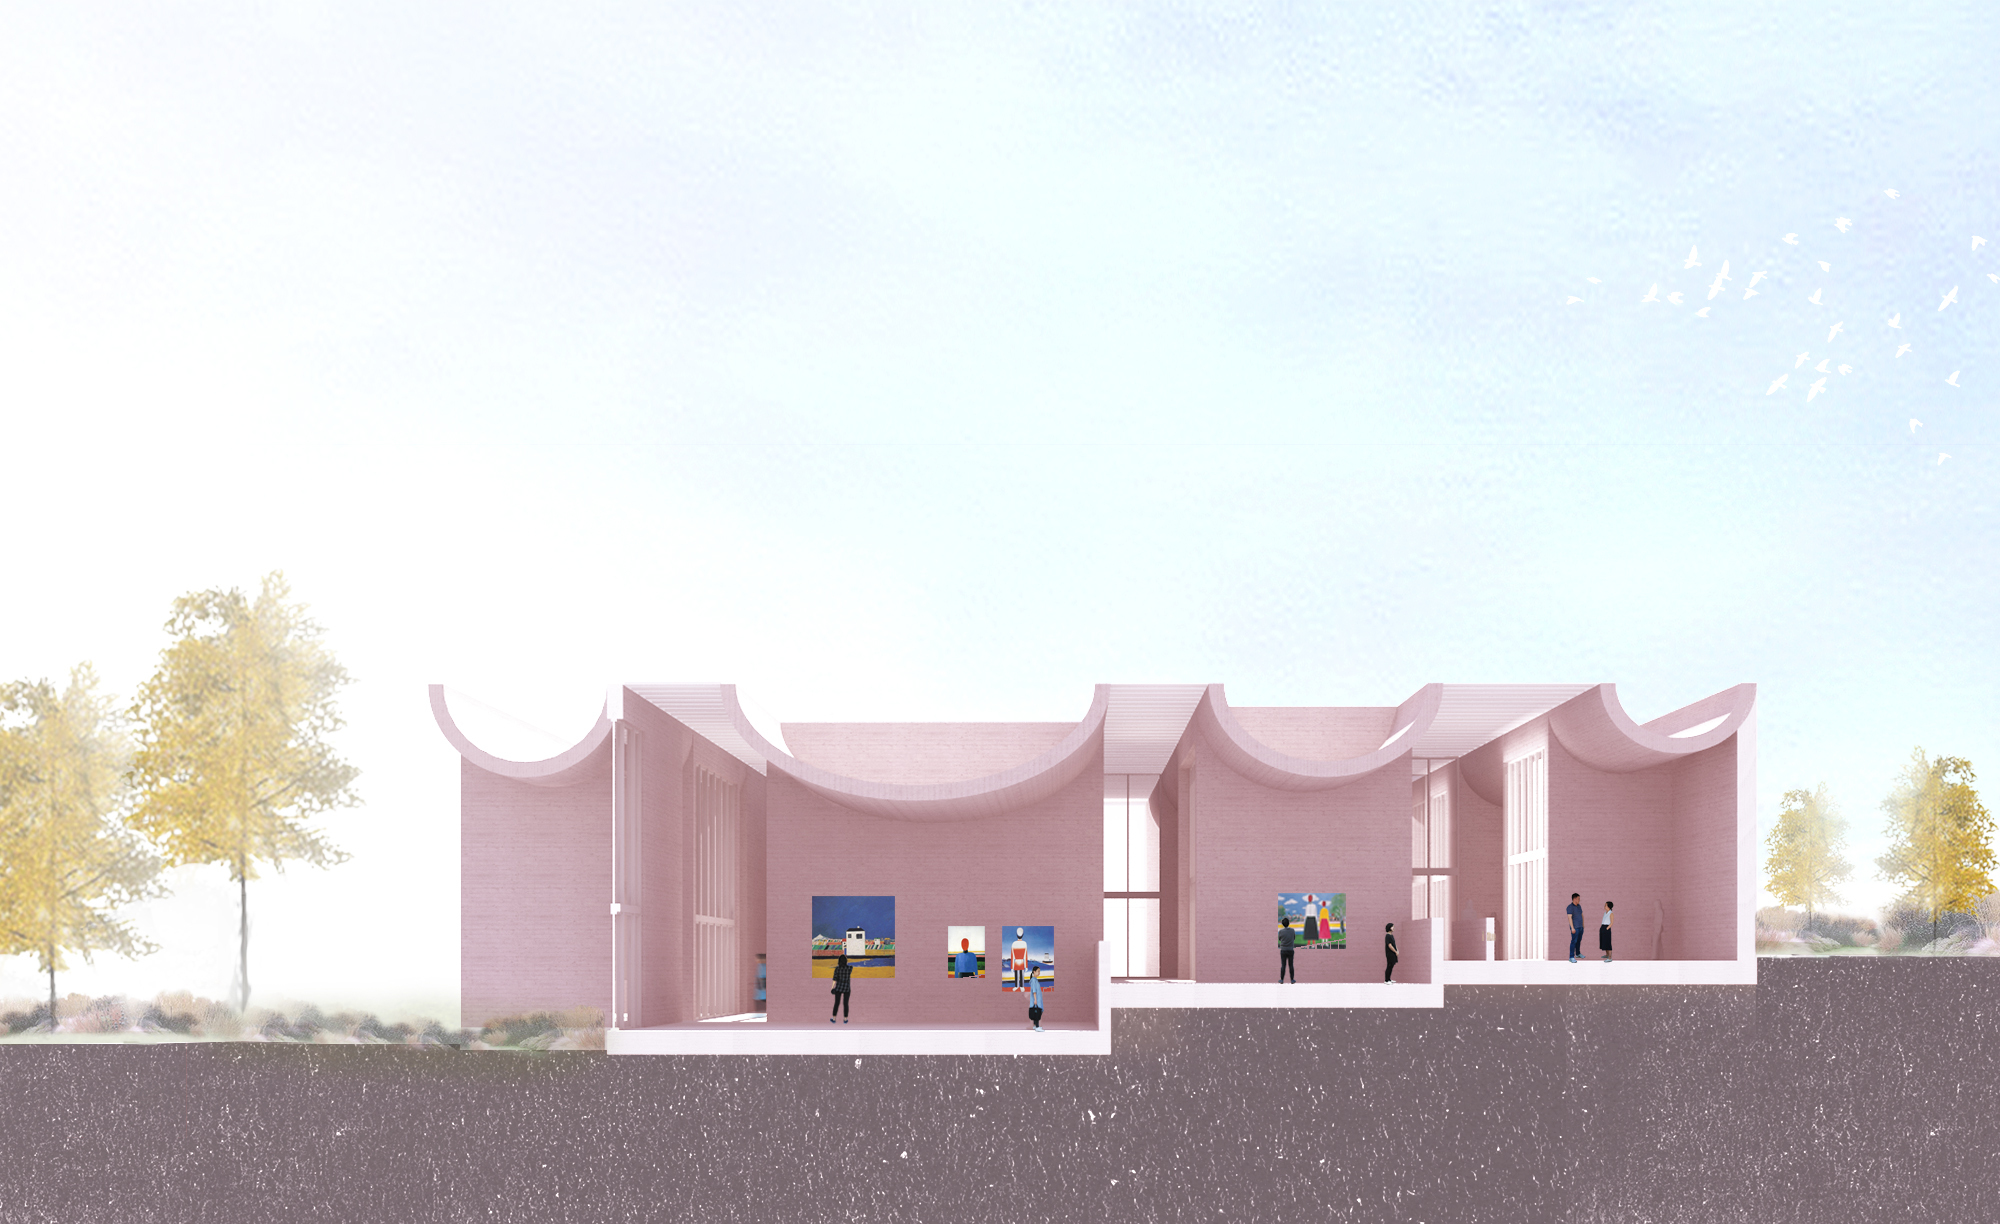 Gallery Of More Architecture Designs Village Inspired Art Museum